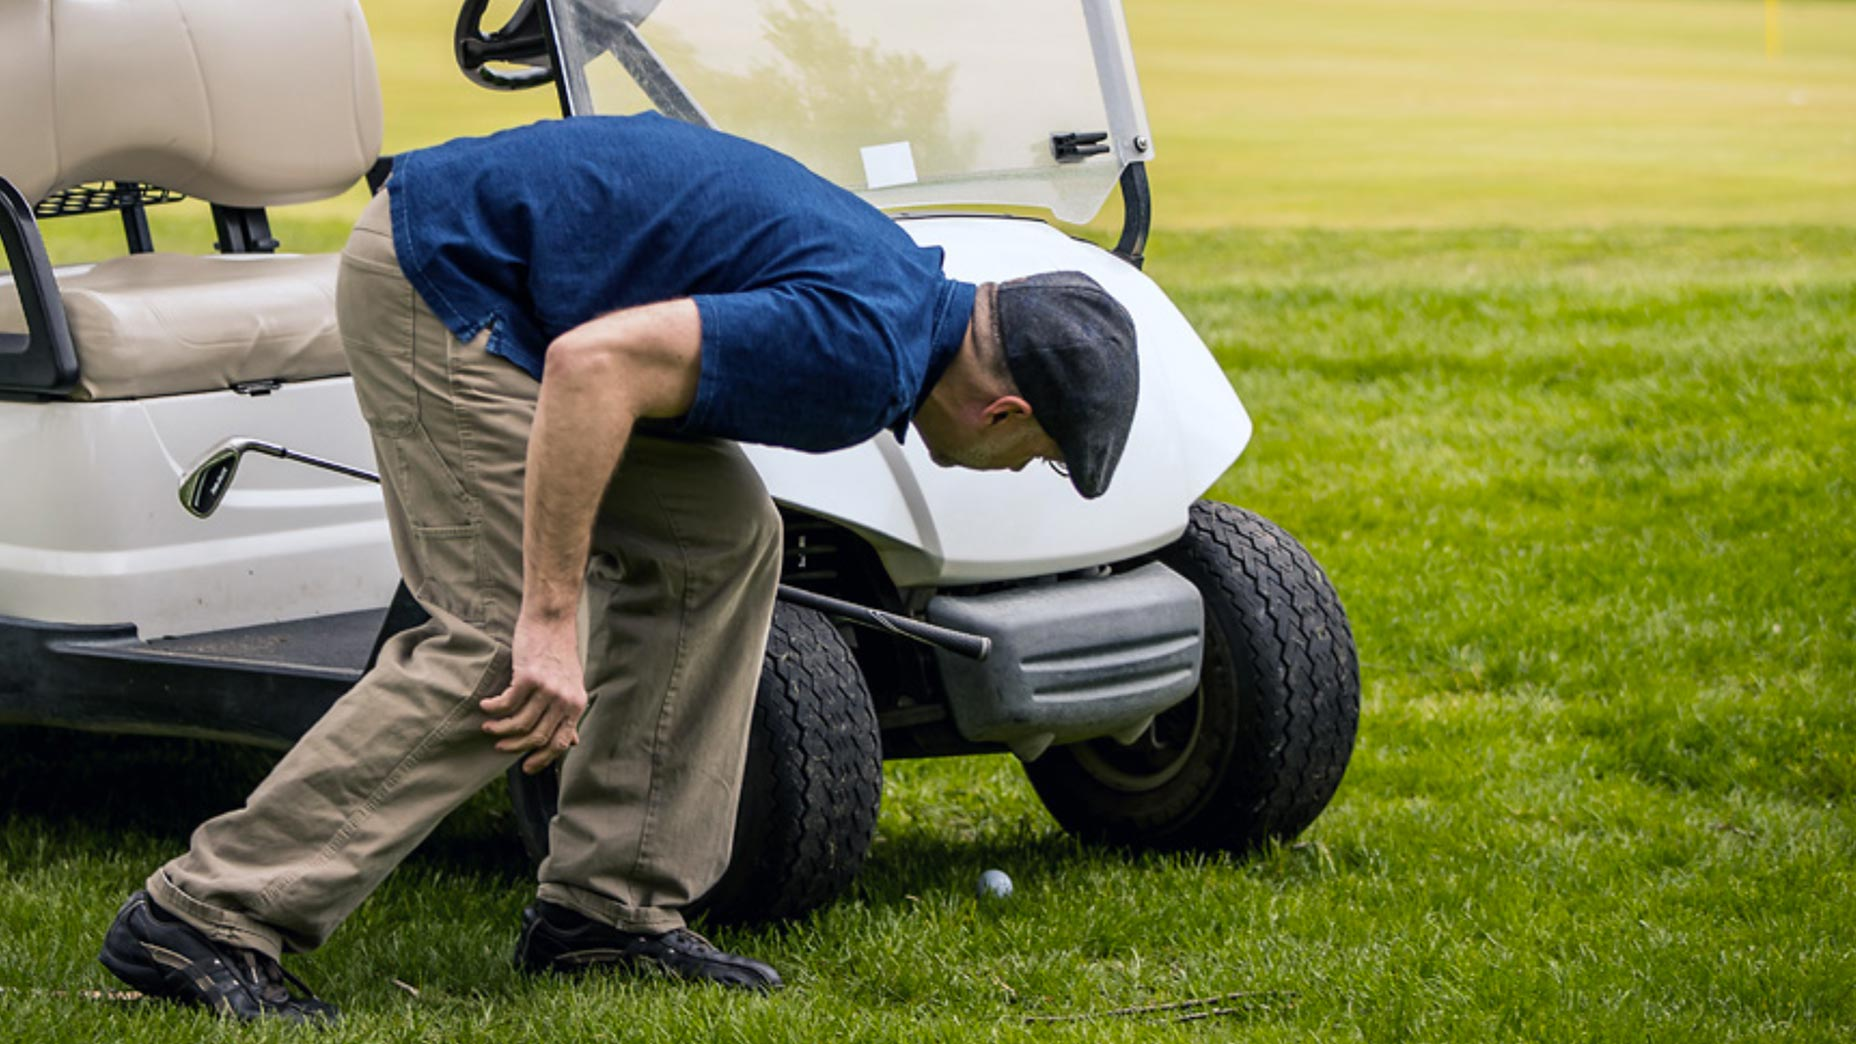 A man looks for his golf ball under a cart.